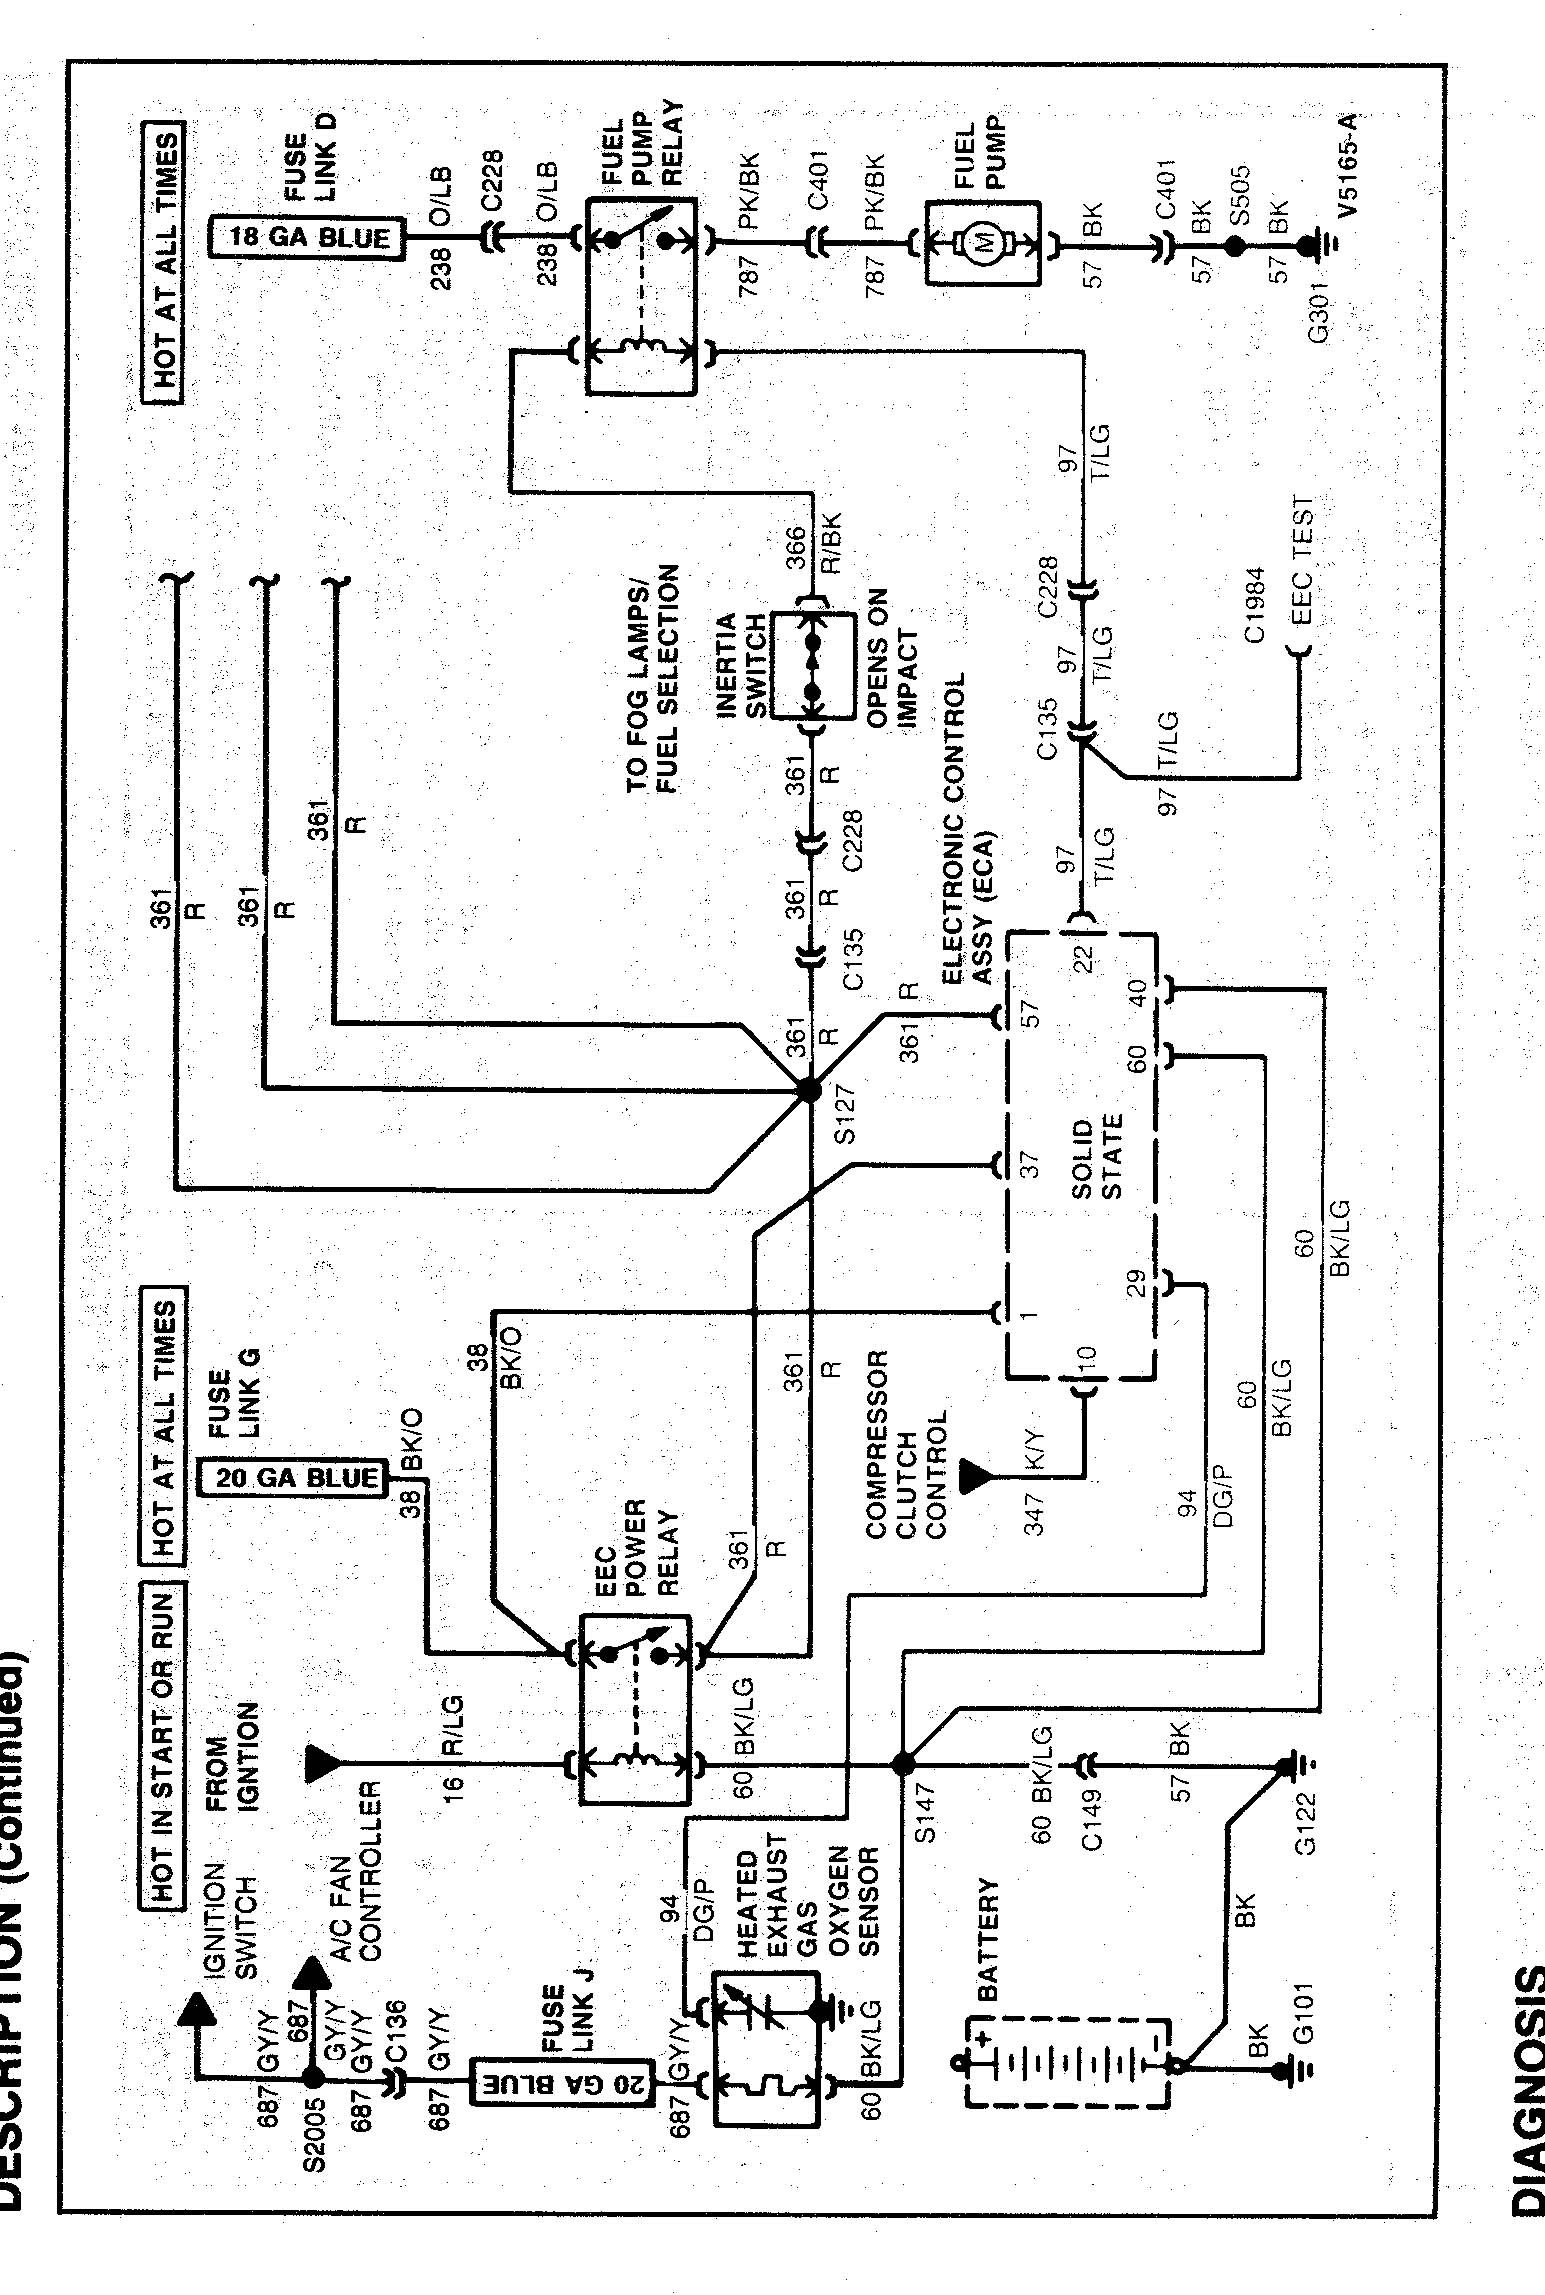 hight resolution of top suggestions 1990 mustang fuel injector schematic